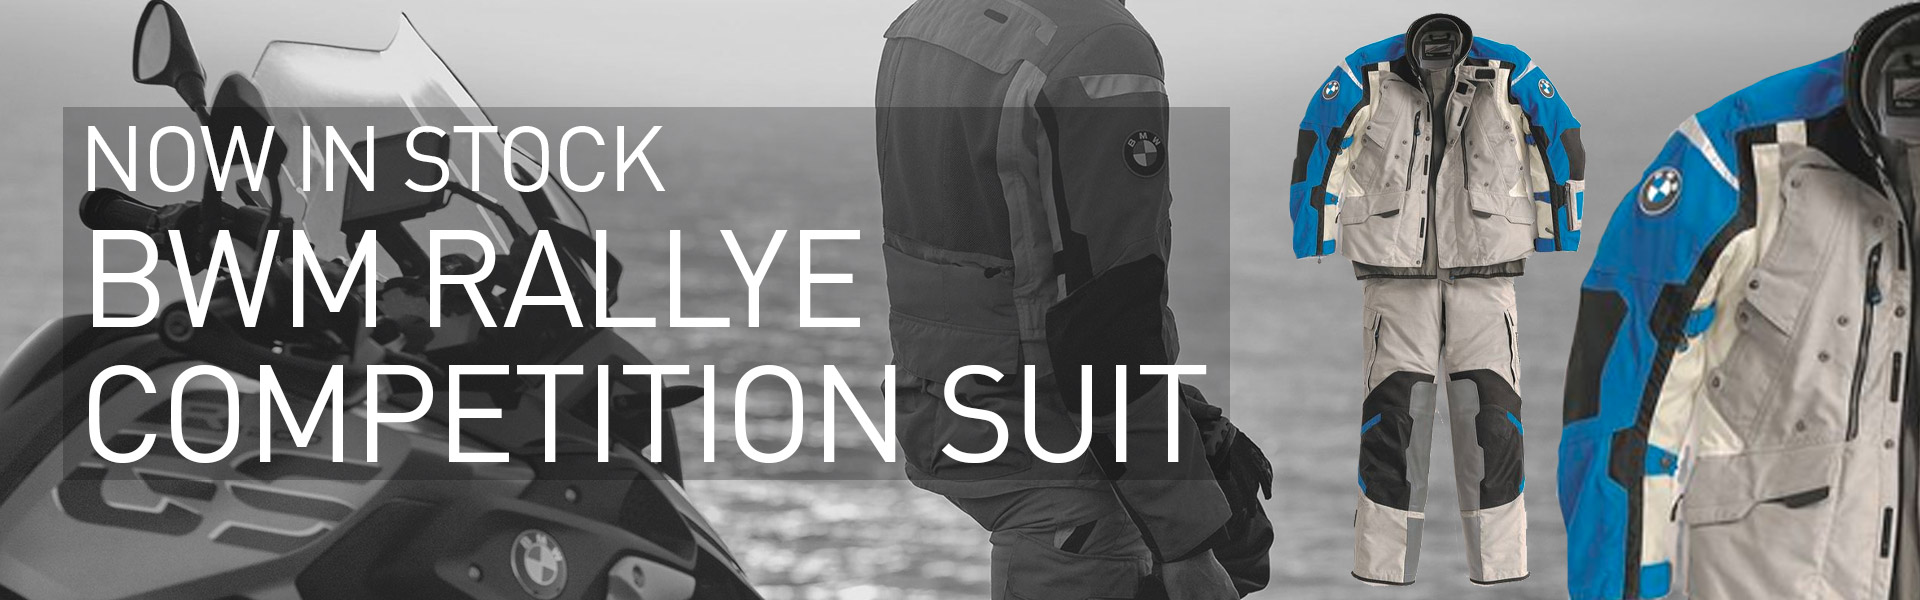 bmw rallye competition suit